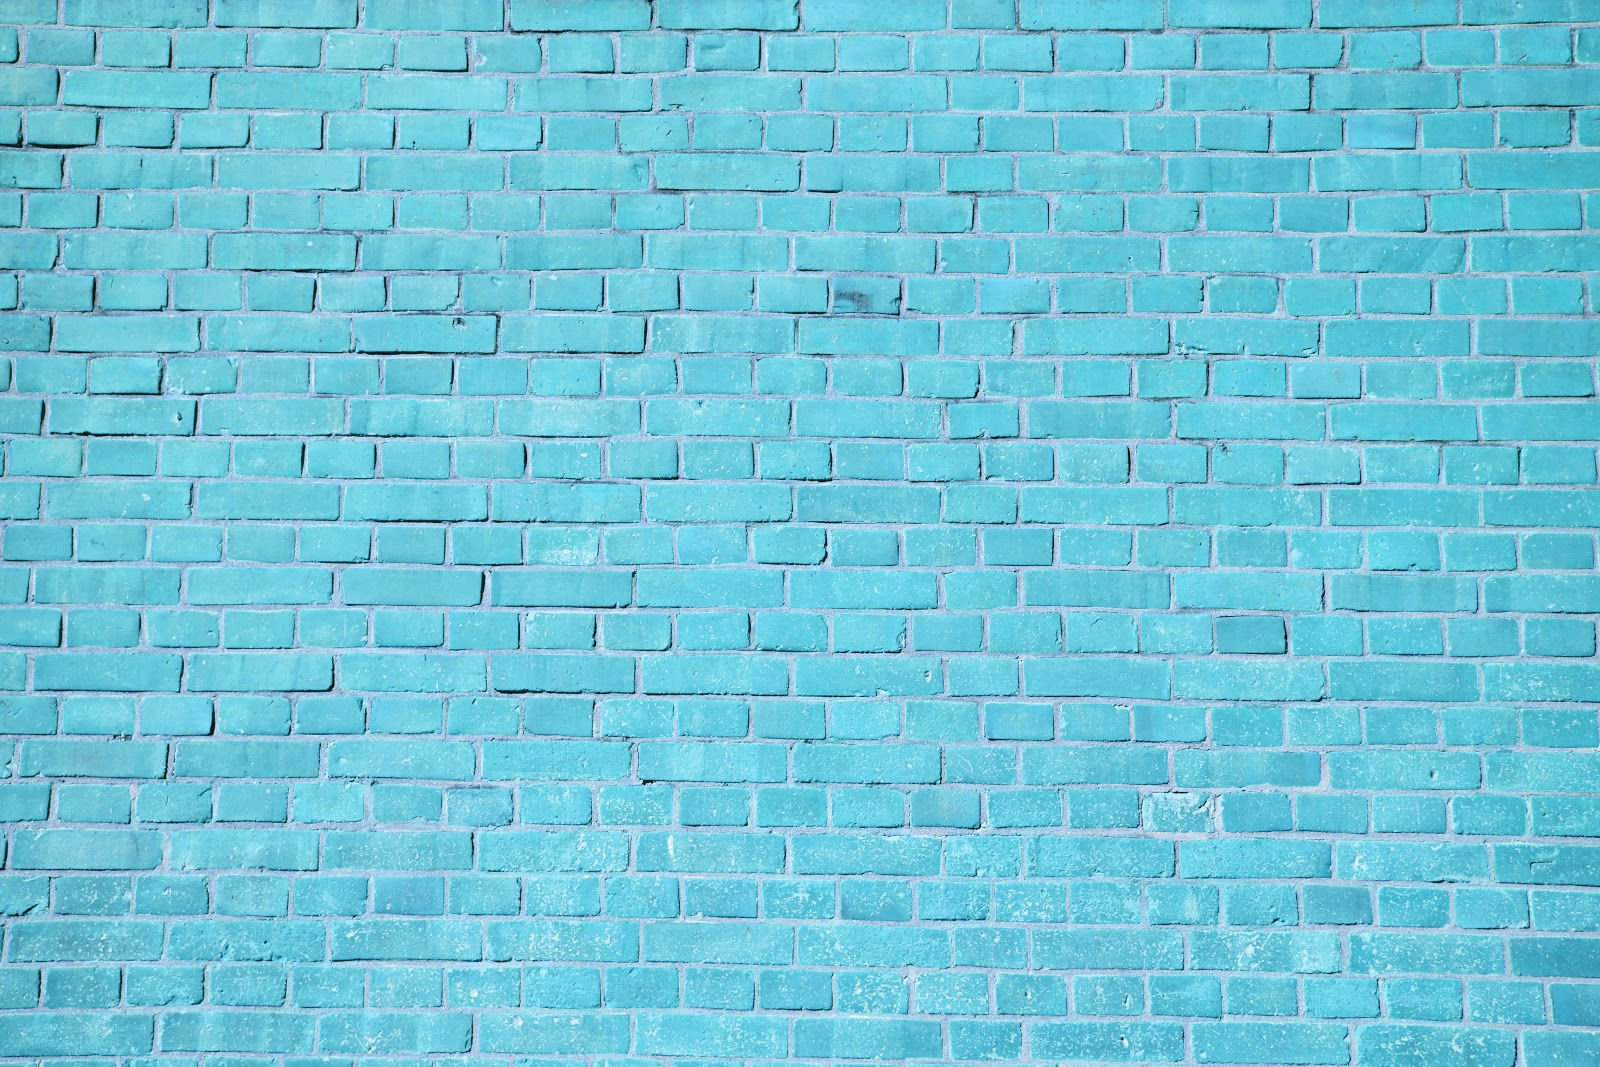 Brick exterior painting for businesses